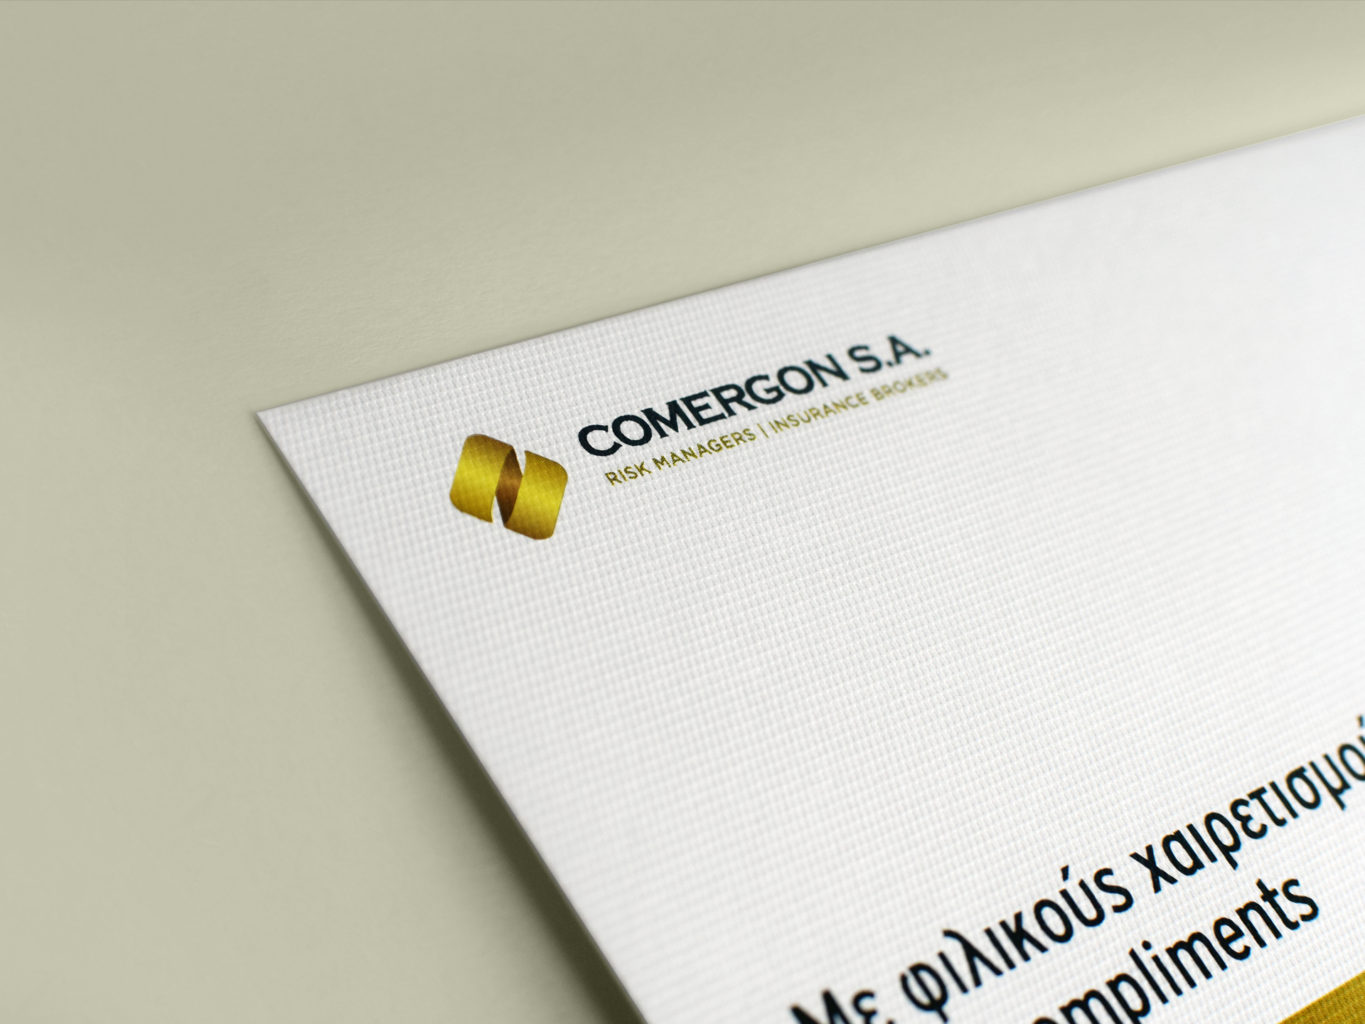 Comergon Risk Managers with compliments cards